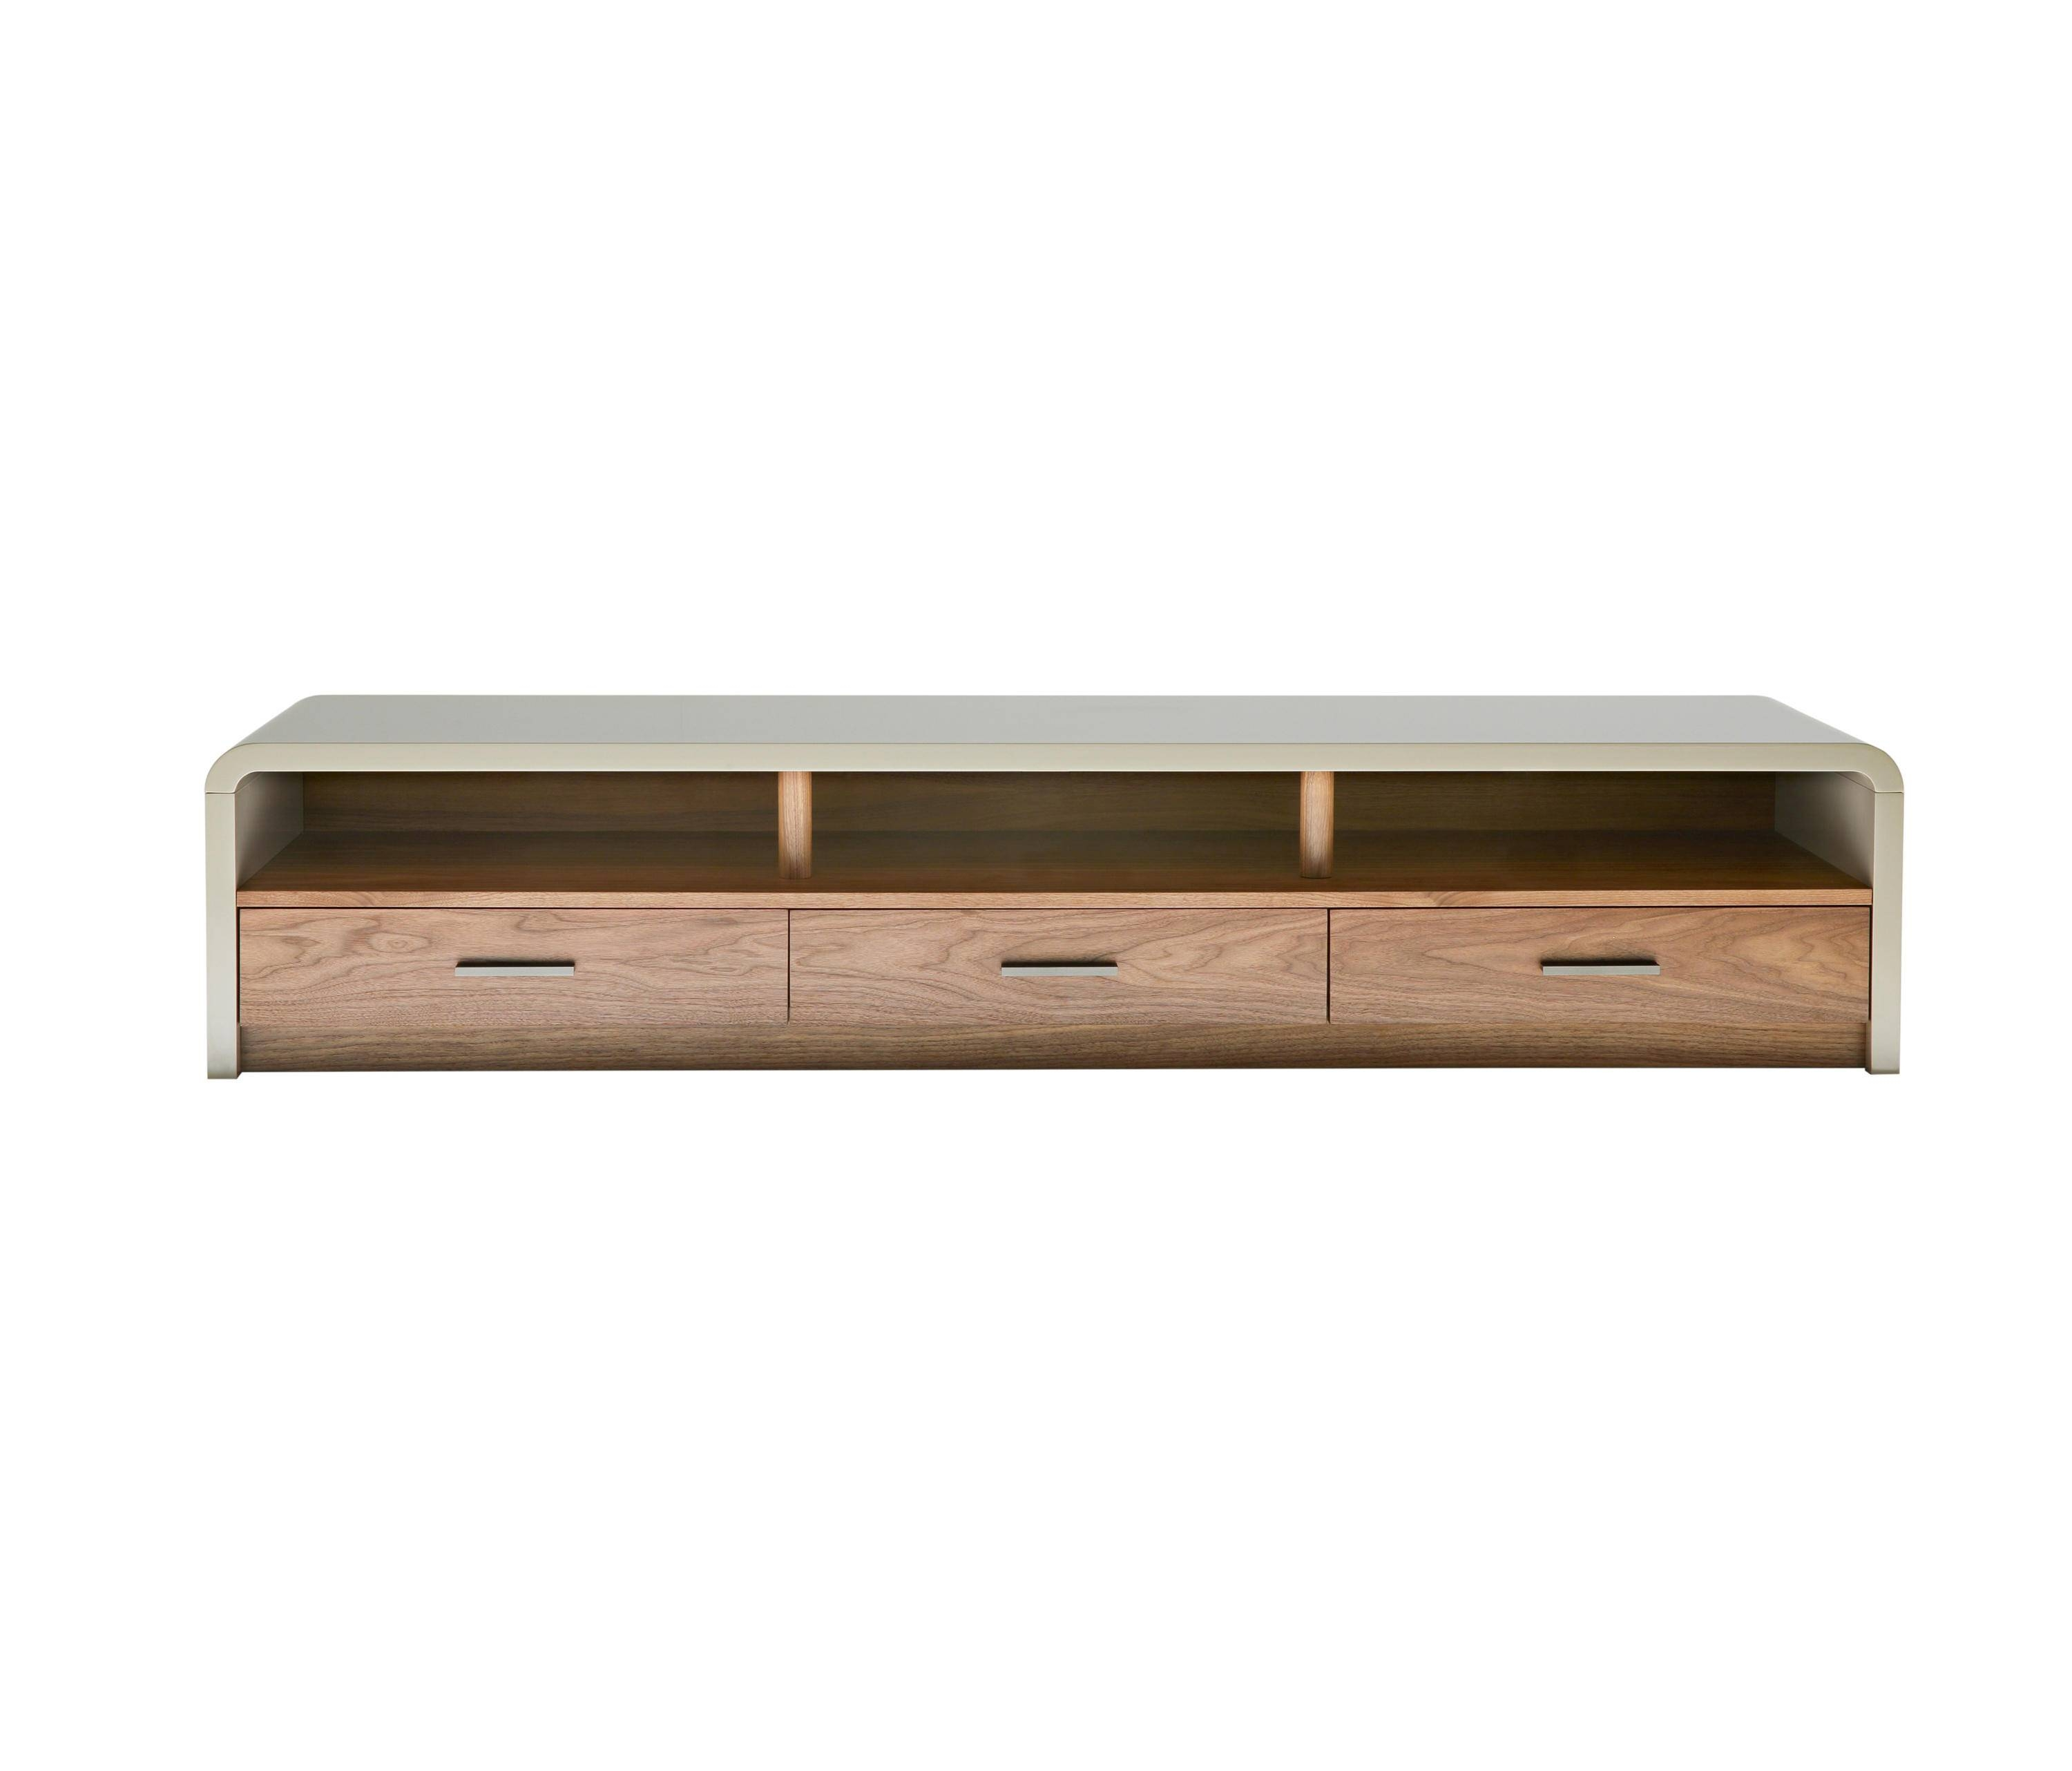 Elitis | Tv Cabinet - Multimedia Sideboards From Hc28 | Architonic intended for Tv Sideboards (Image 10 of 30)